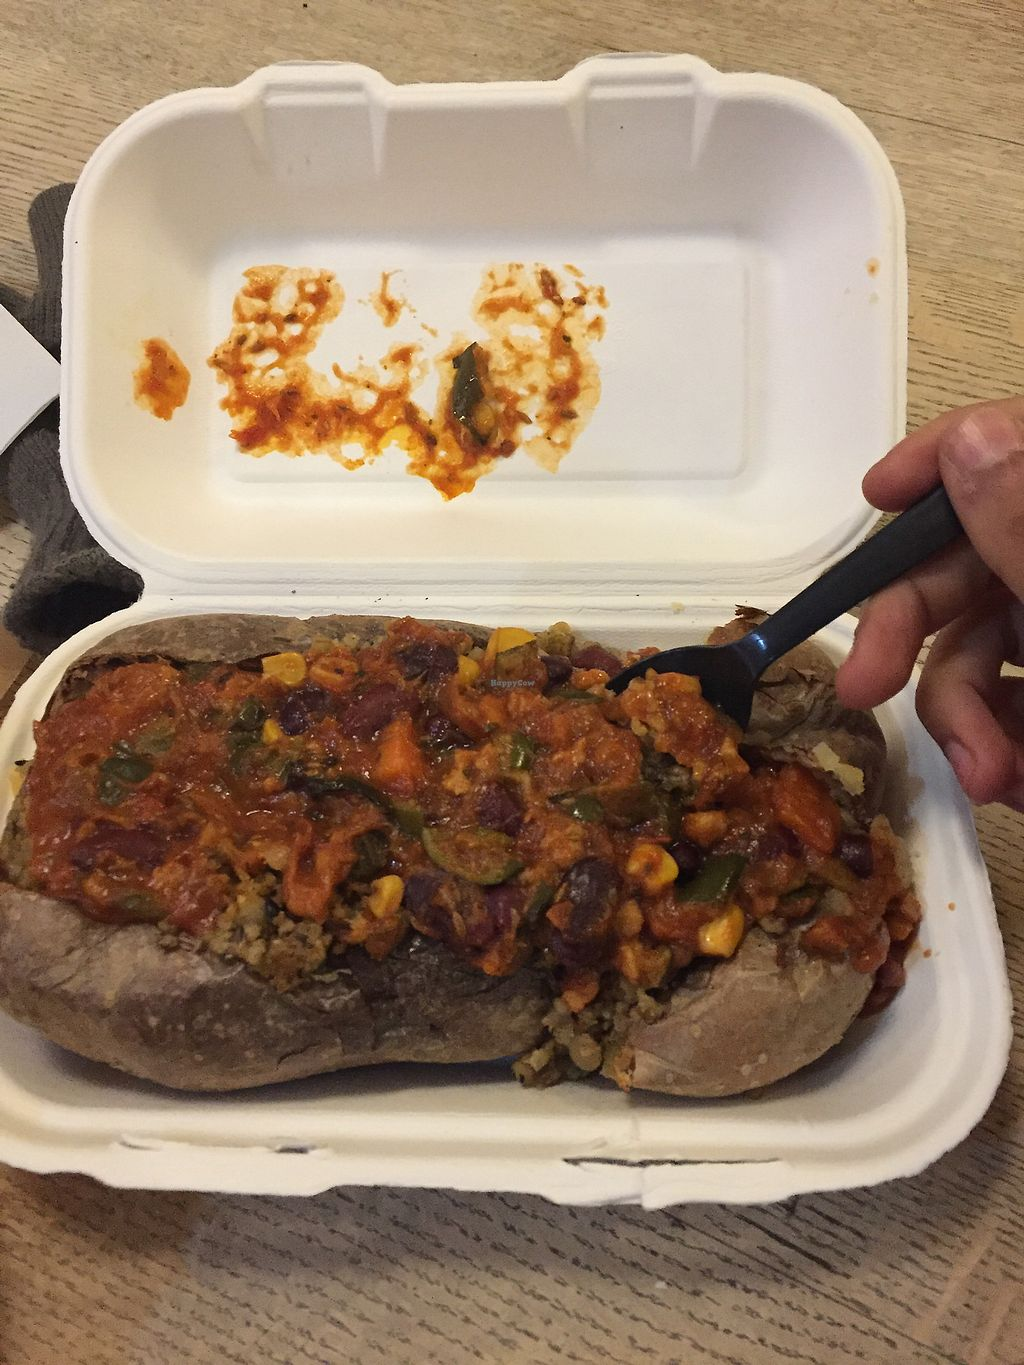 "Photo of The Baked Potato Shop  by <a href=""/members/profile/blackoutrishi"">blackoutrishi</a> <br/>Chilli haggis  <br/> November 23, 2017  - <a href='/contact/abuse/image/1070/328528'>Report</a>"